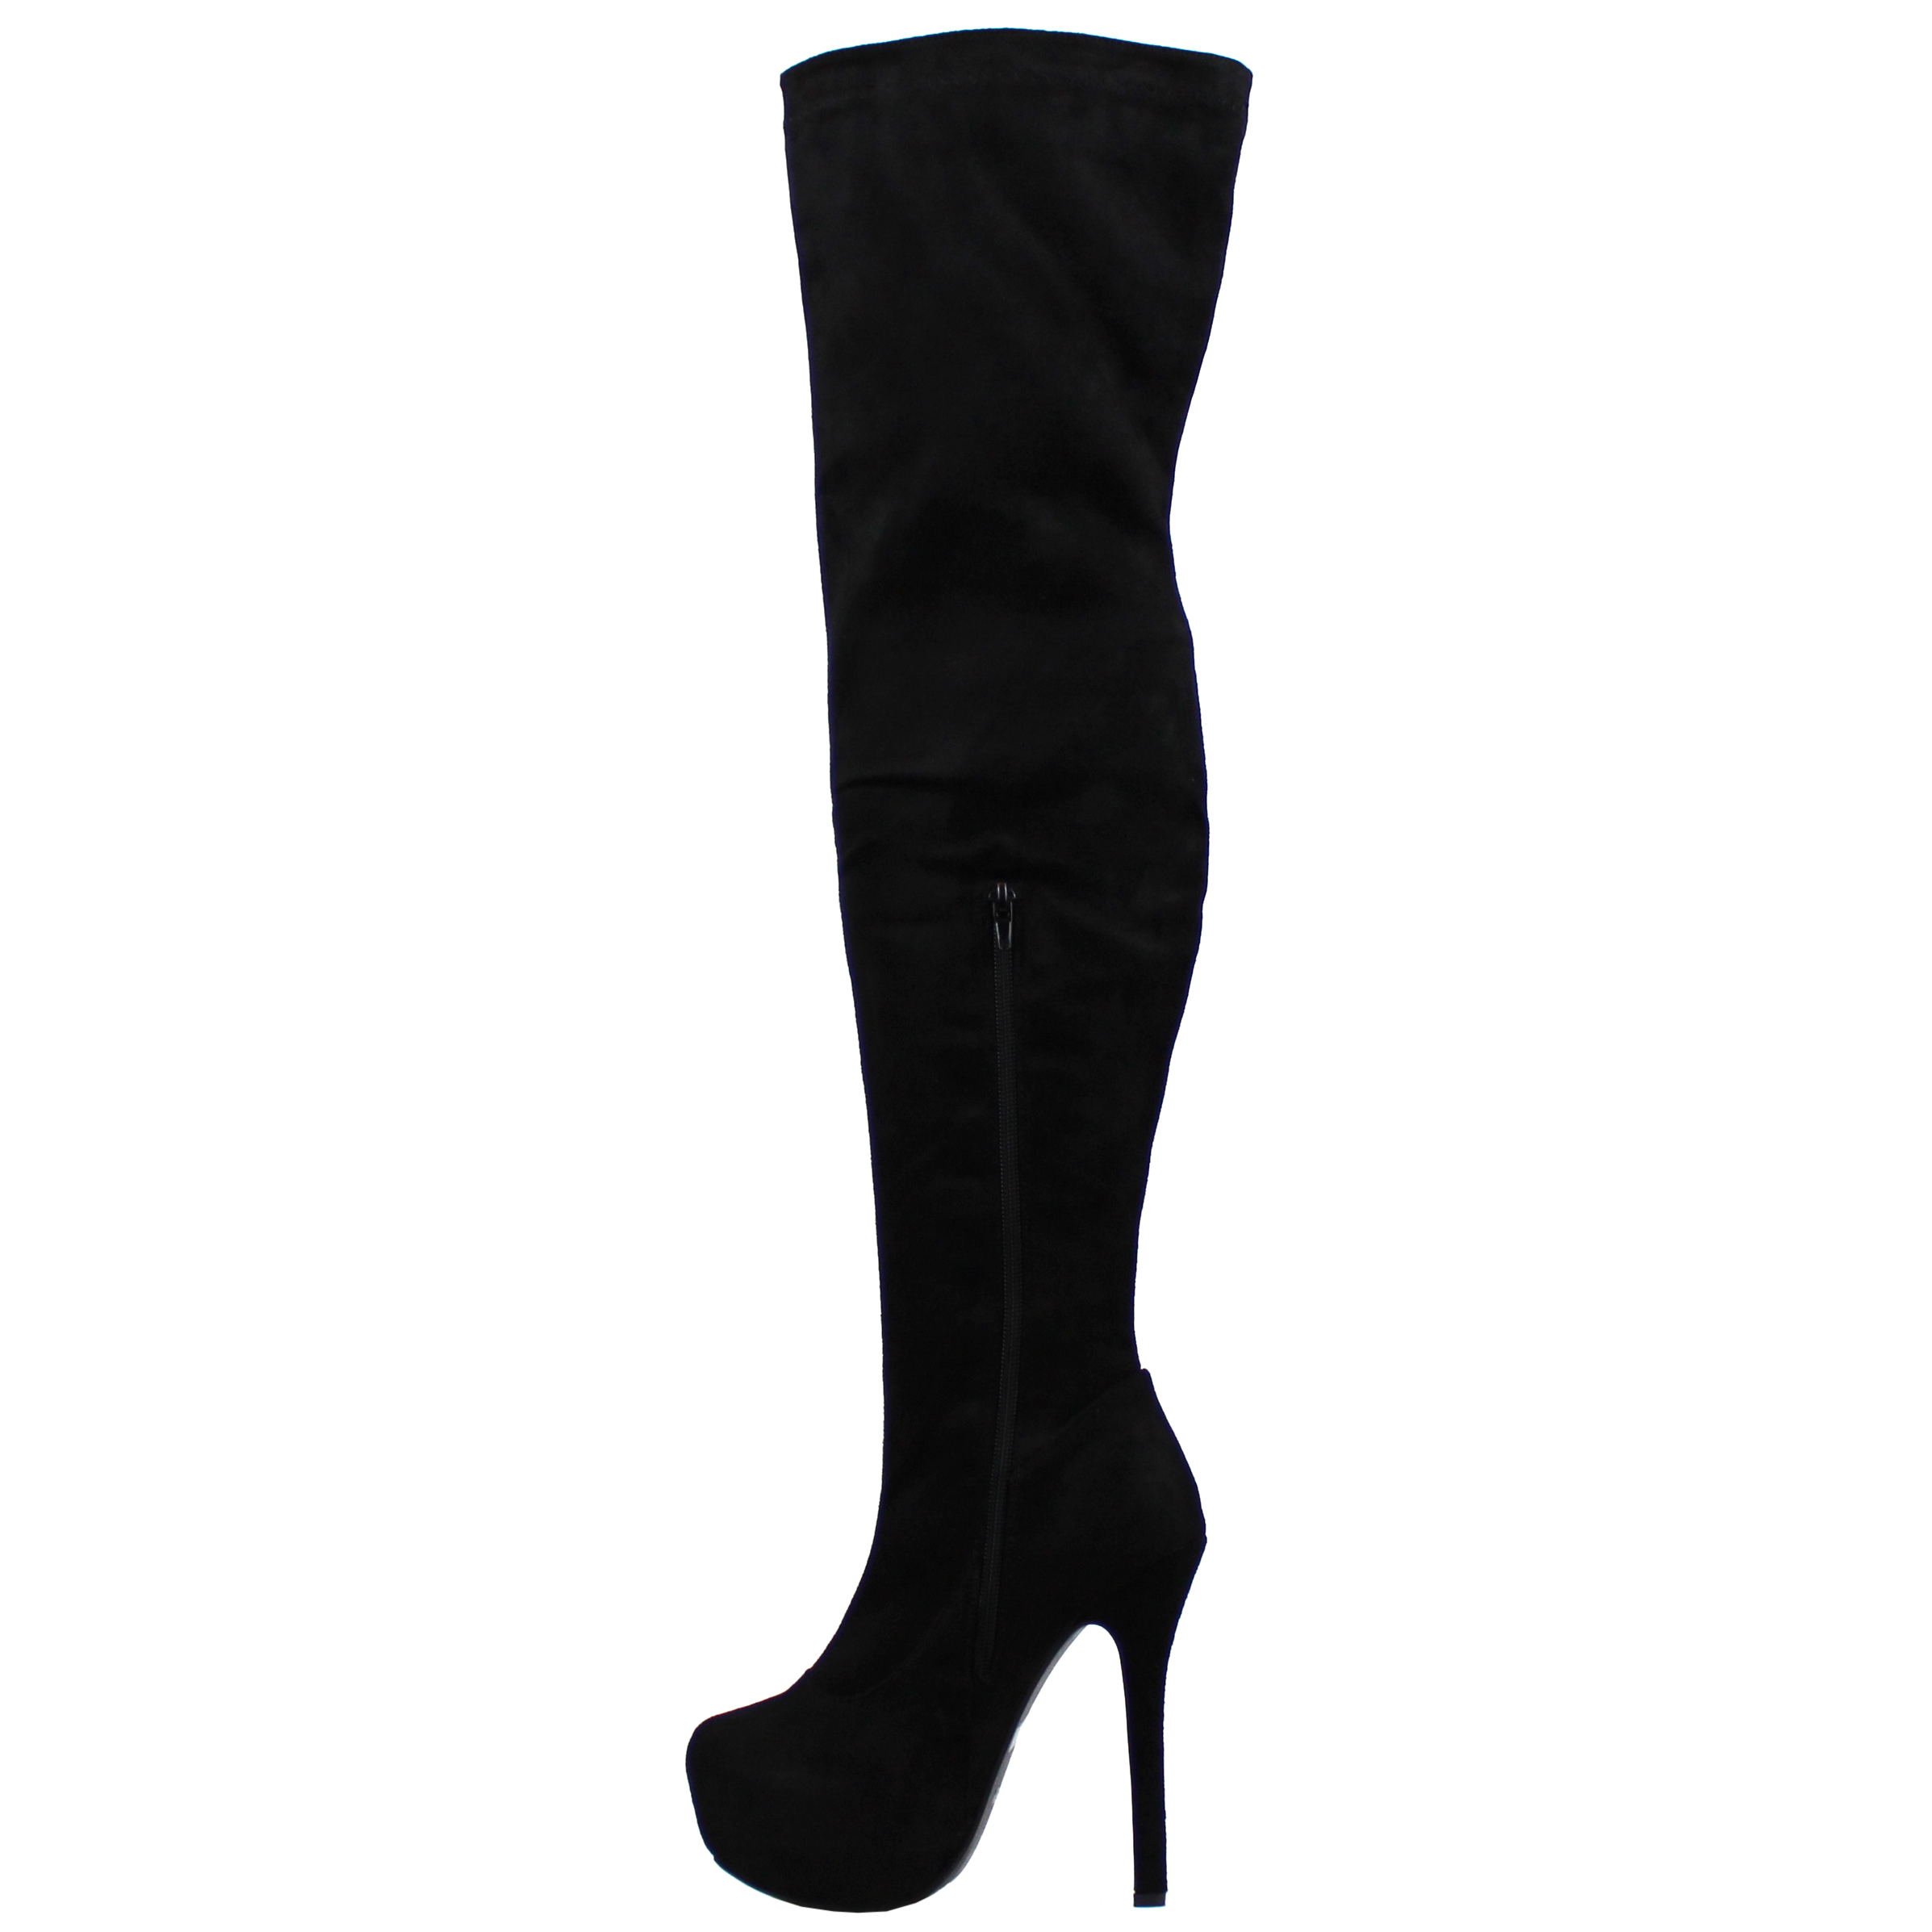 Ladies Over The Knee Boots () Make a show stopping entrance with Dune London's new range of ladies over the knee boots. Wear with jeans for effortless style or pair with a skirt for the ultimate night out look.